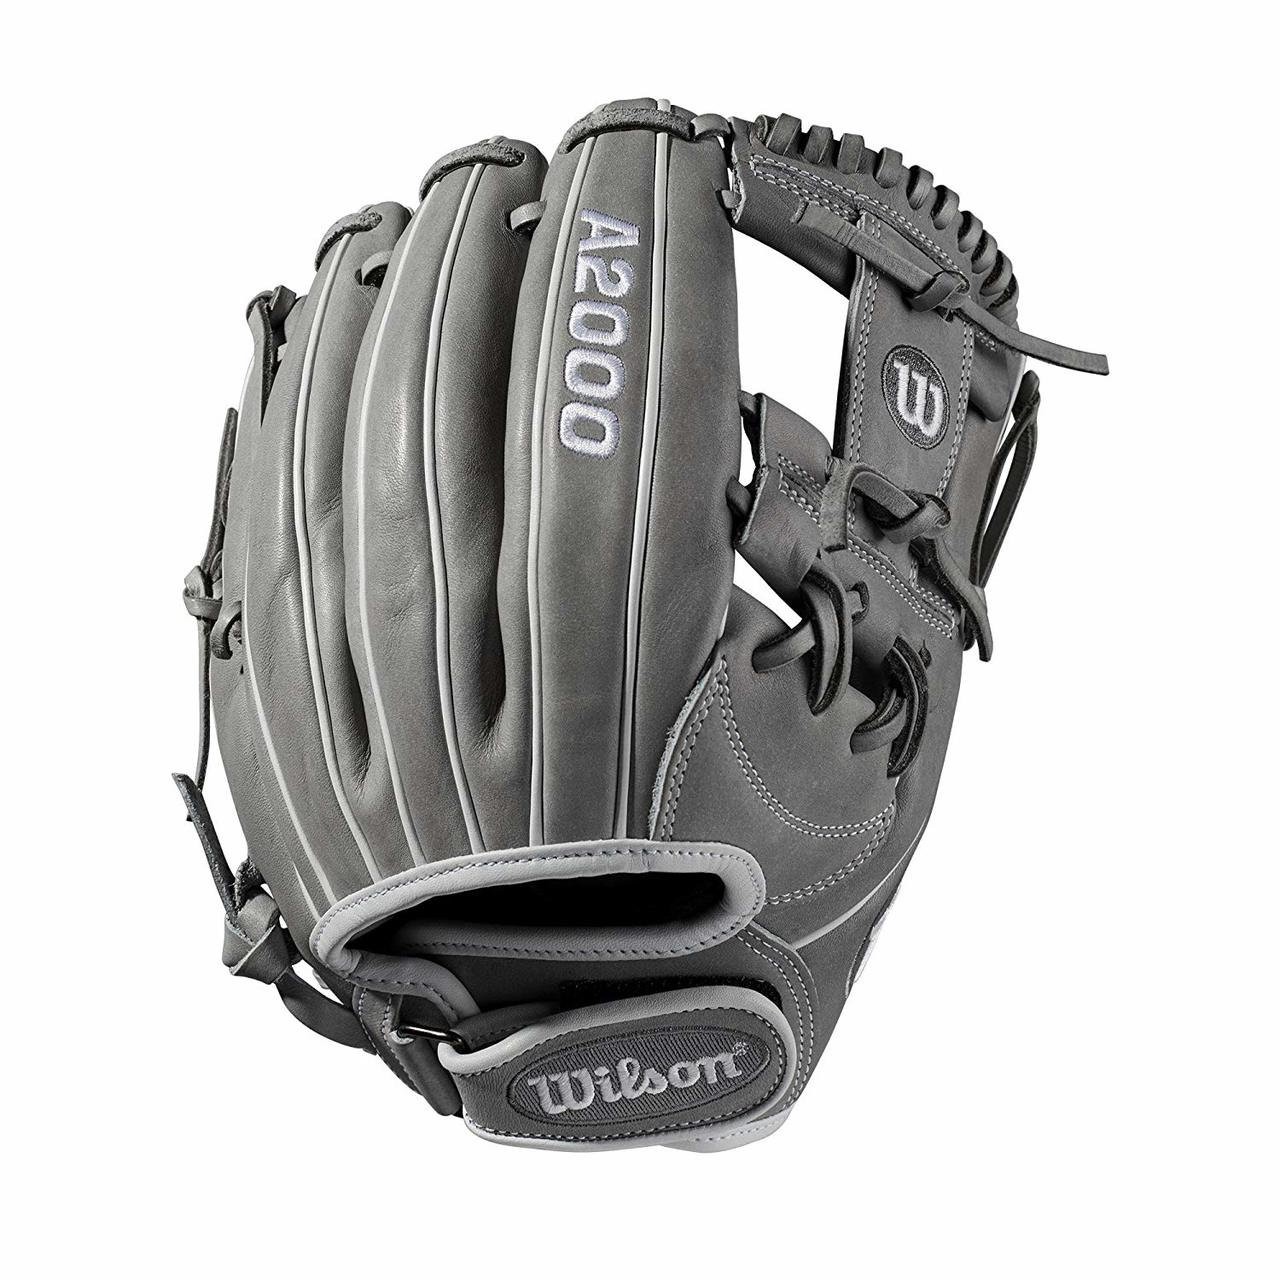 wilson-a2000-fasptich-softball-glove-11-75-h-web-right-hand-throw WTA20RF1175-RightHandThrow  887768702106 nfield model; H-Web; fast pitch-specific WTA20RF191175 Comfort Velcro wrist closure for